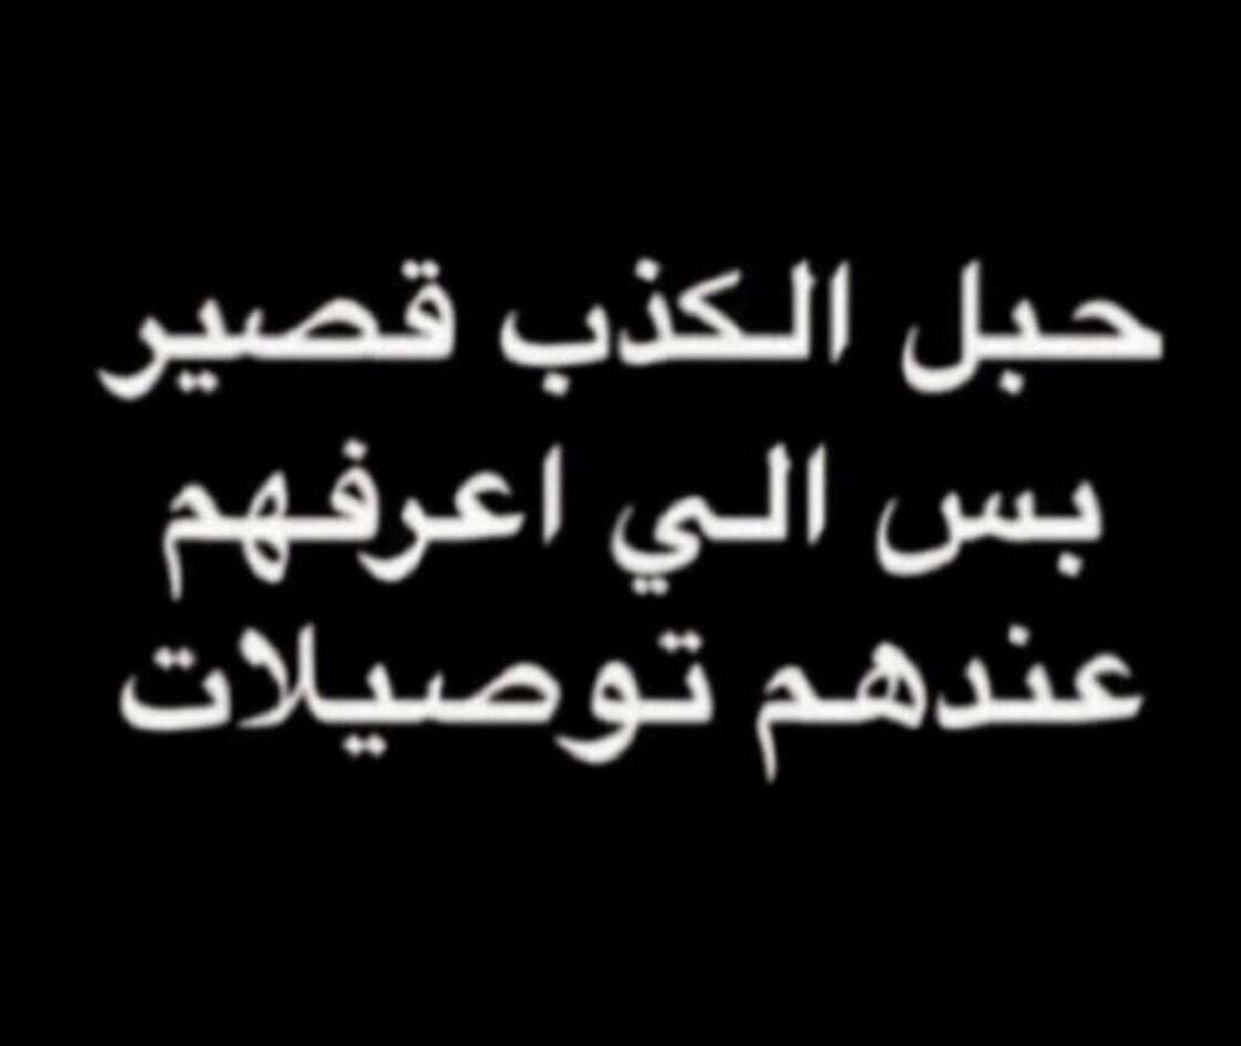 Pin By Hanan Mattar On Fun تسلية Funny Relatable Quotes Jokes Quotes Funny Words